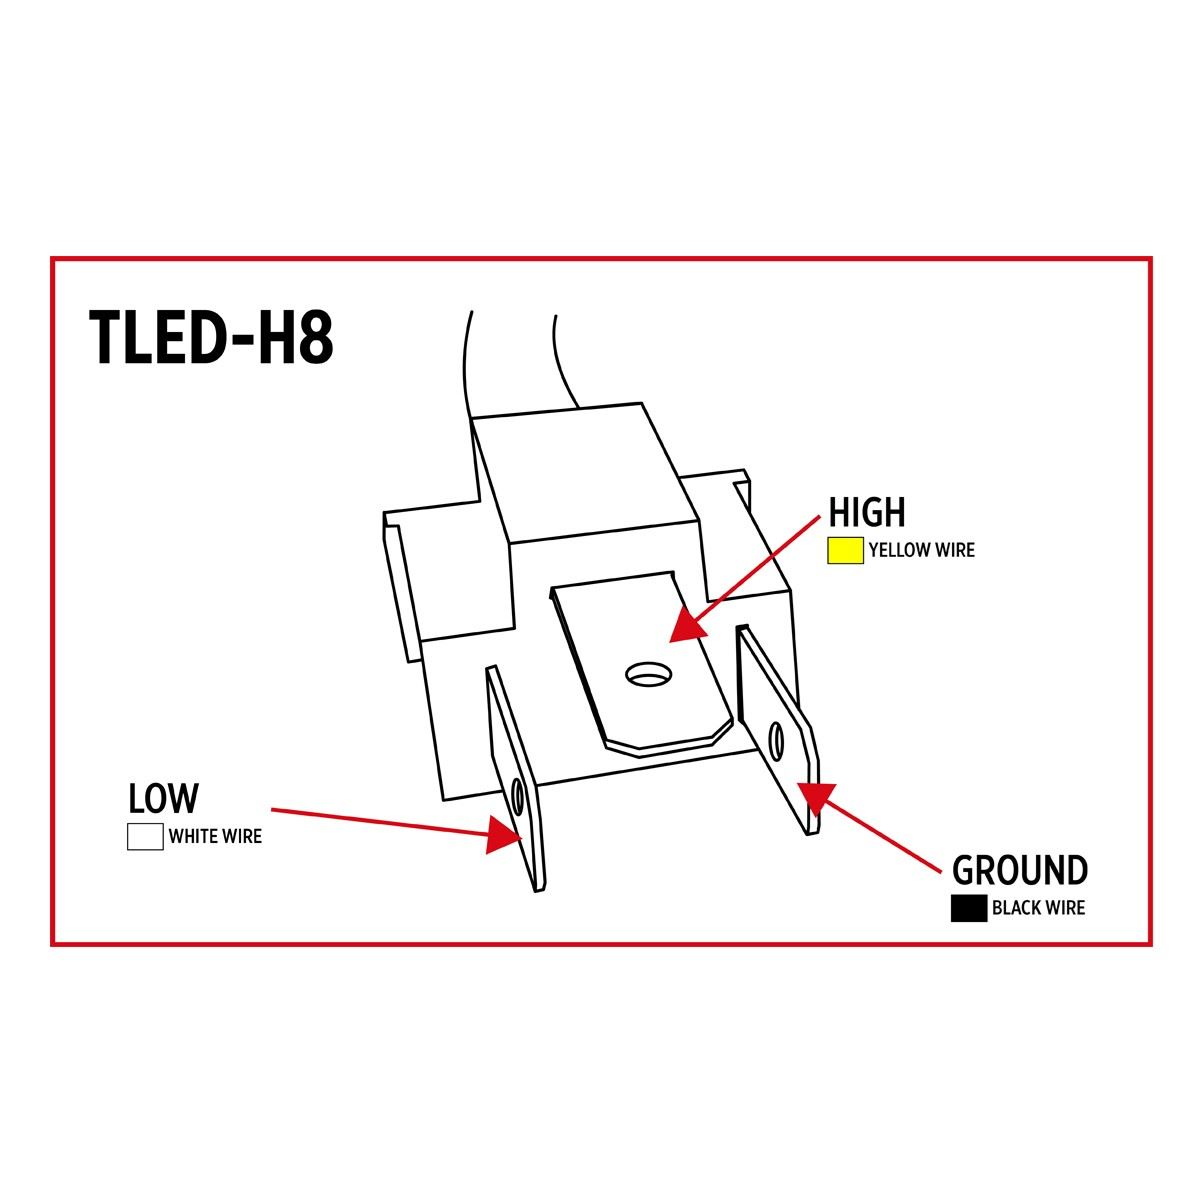 led headlights wiring diagram tled h8  trux led projector headlight  199 with free shipping  tled h8  trux led projector headlight